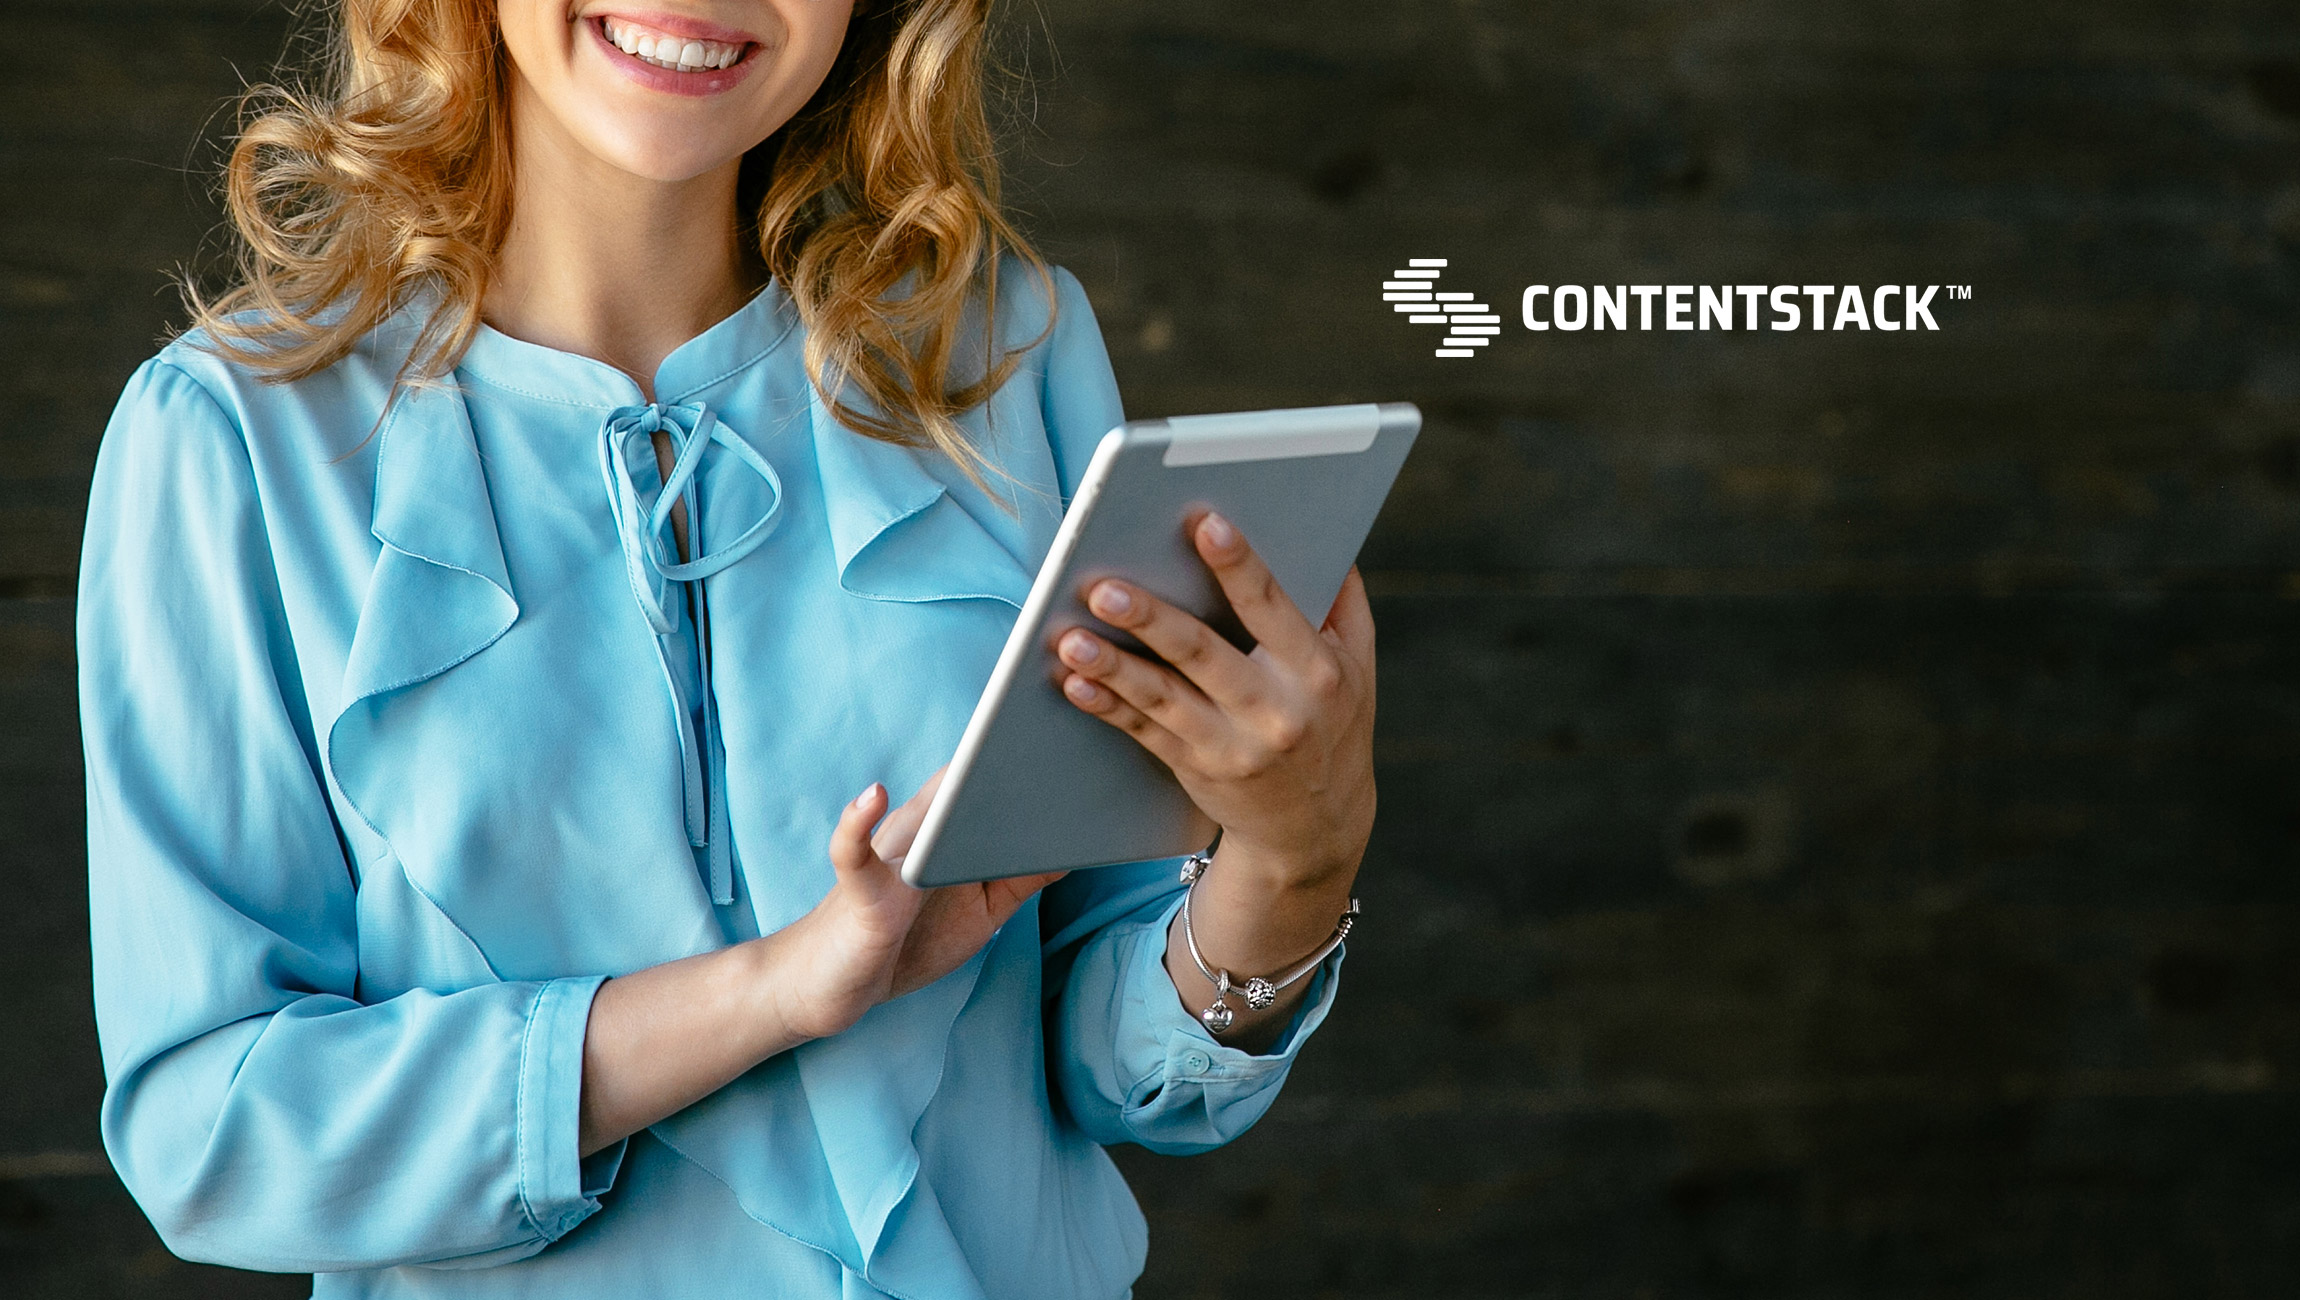 Contentstack and Commercetools Collaborate for Digital Shopping Experience of the Future